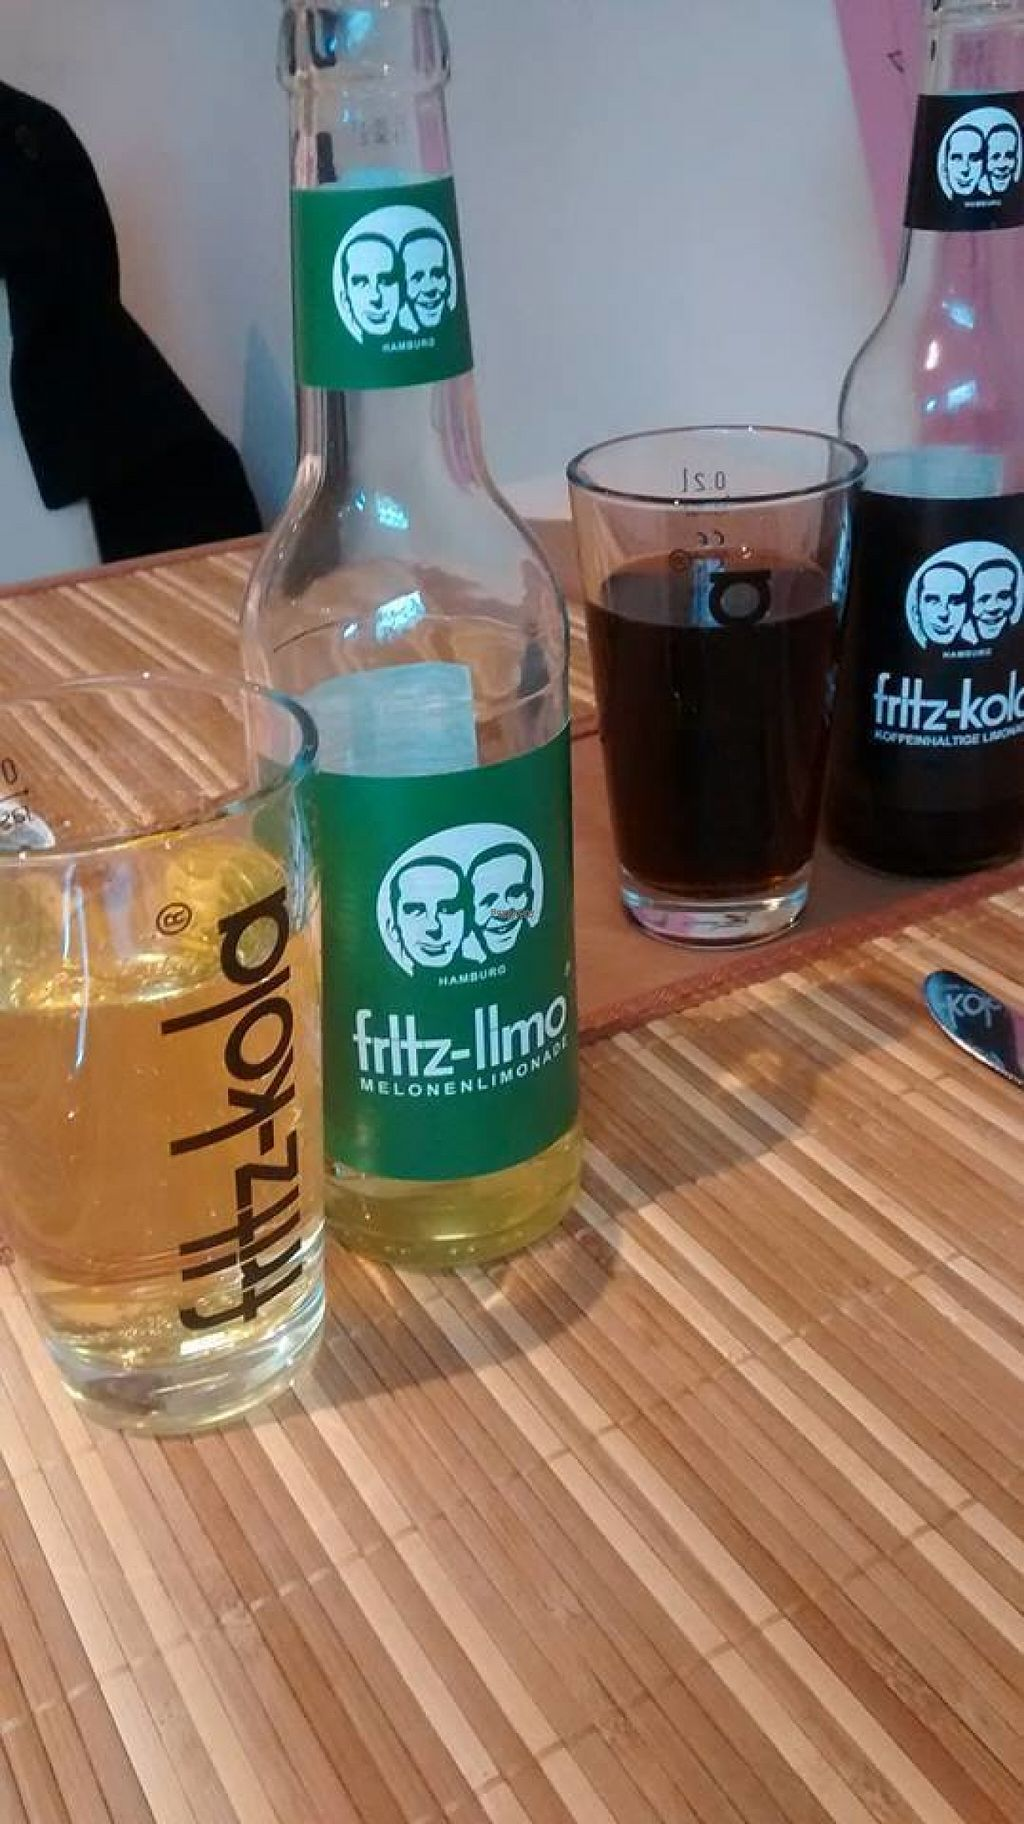 """Photo of Loving Hut - St Georg  by <a href=""""/members/profile/BlisterBlue"""">BlisterBlue</a> <br/>Fritz-Cola and Fritz-Melon, a must in Hamburg! <br/> November 2, 2016  - <a href='/contact/abuse/image/69030/186112'>Report</a>"""